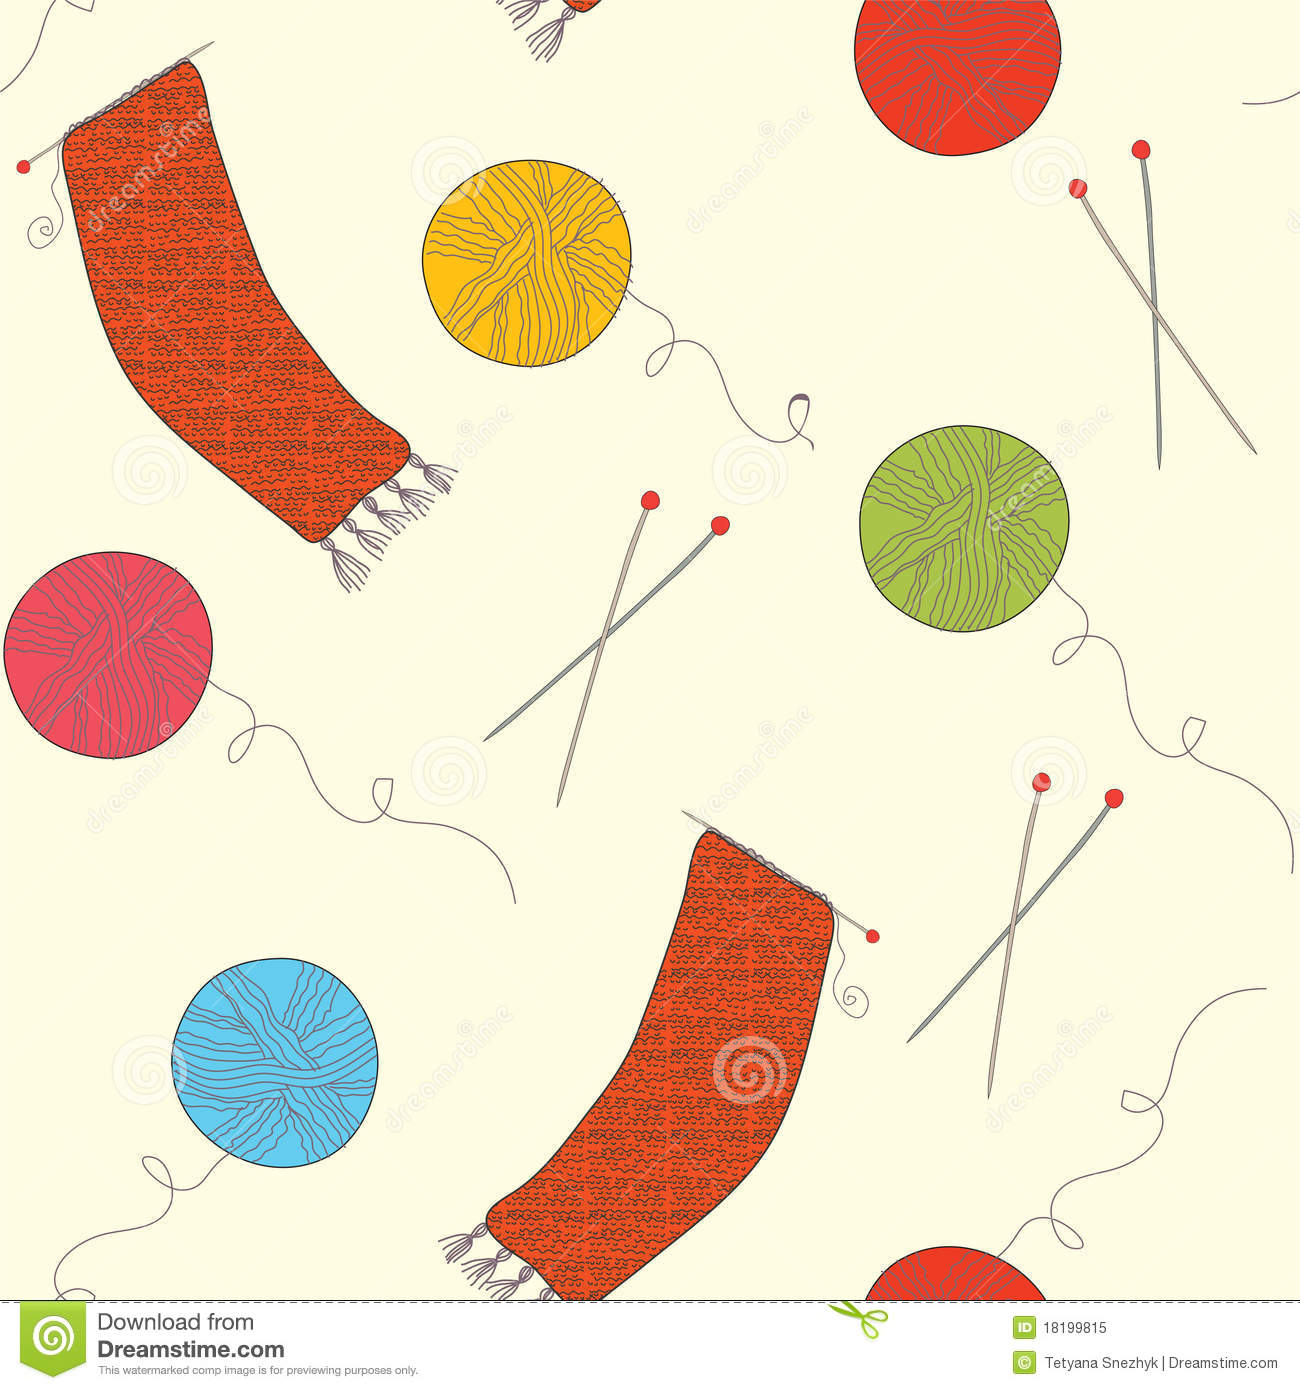 Funny Knitting Patterns : Knitting funny seamless pattern stock vector image